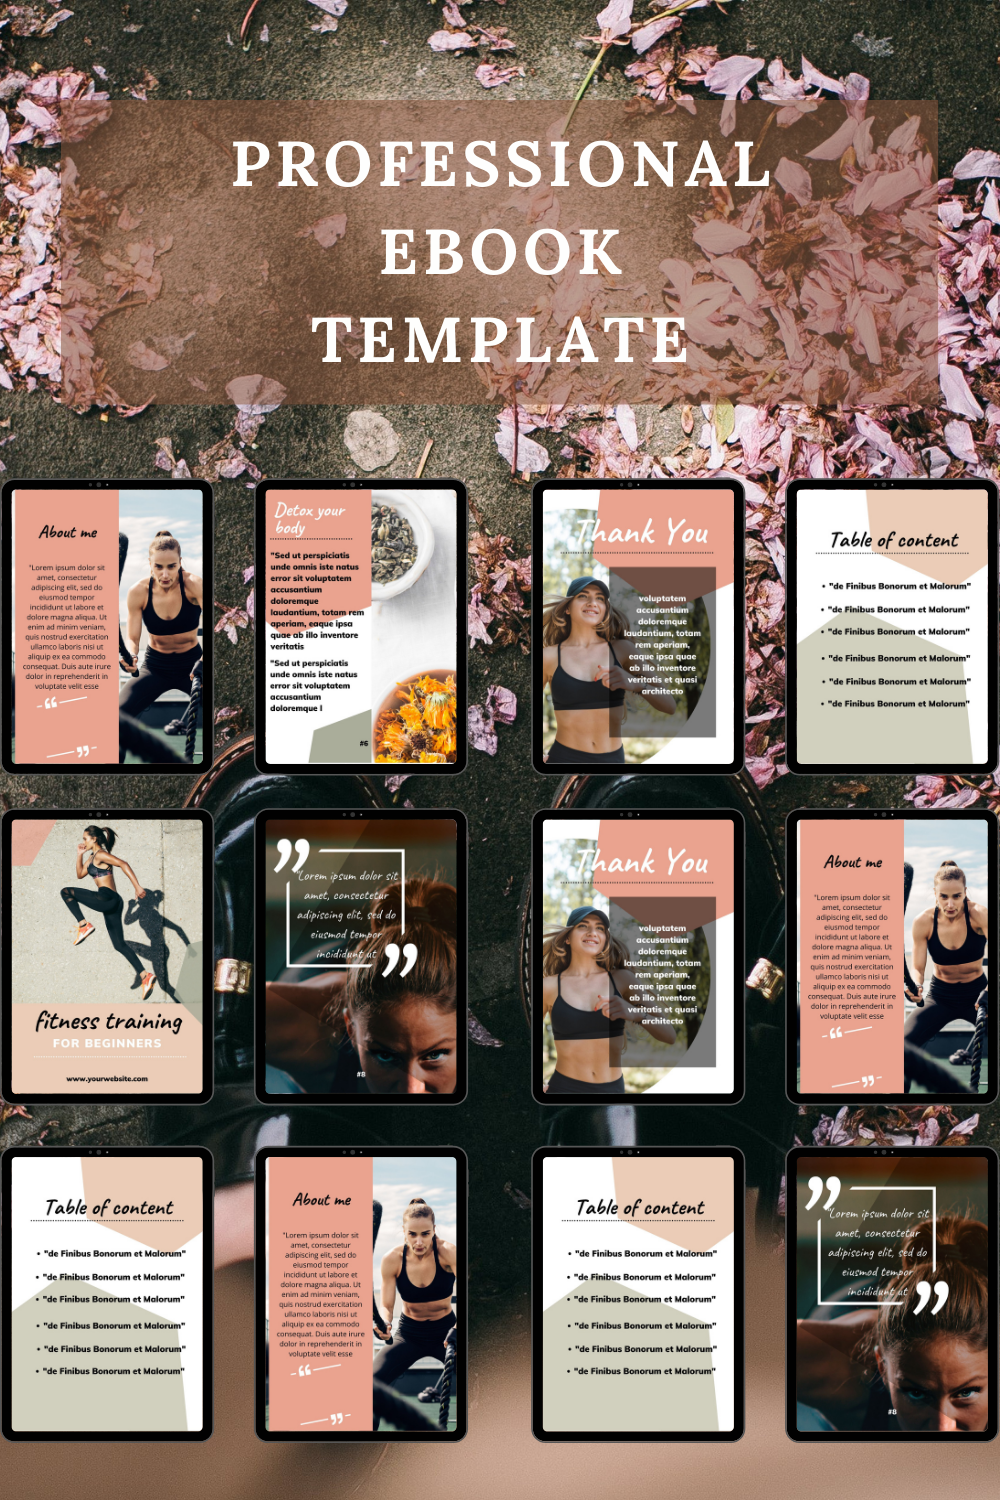 Ebook workbook template for bloggers and coaches